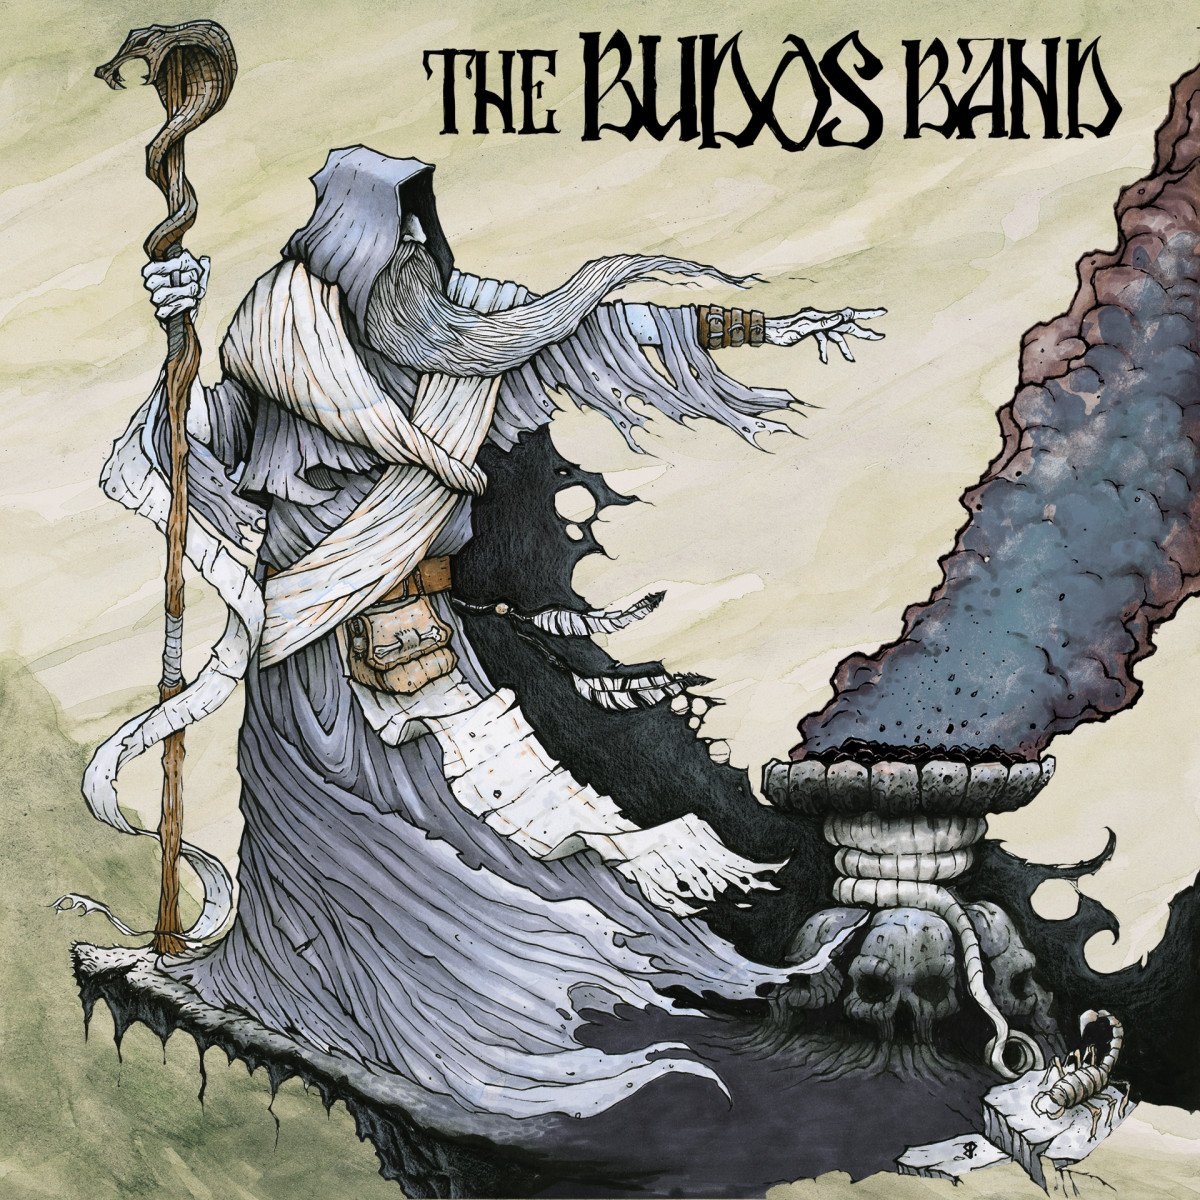 Vinilo : The Budos Band - Burnt Offering (Digital Download Card)